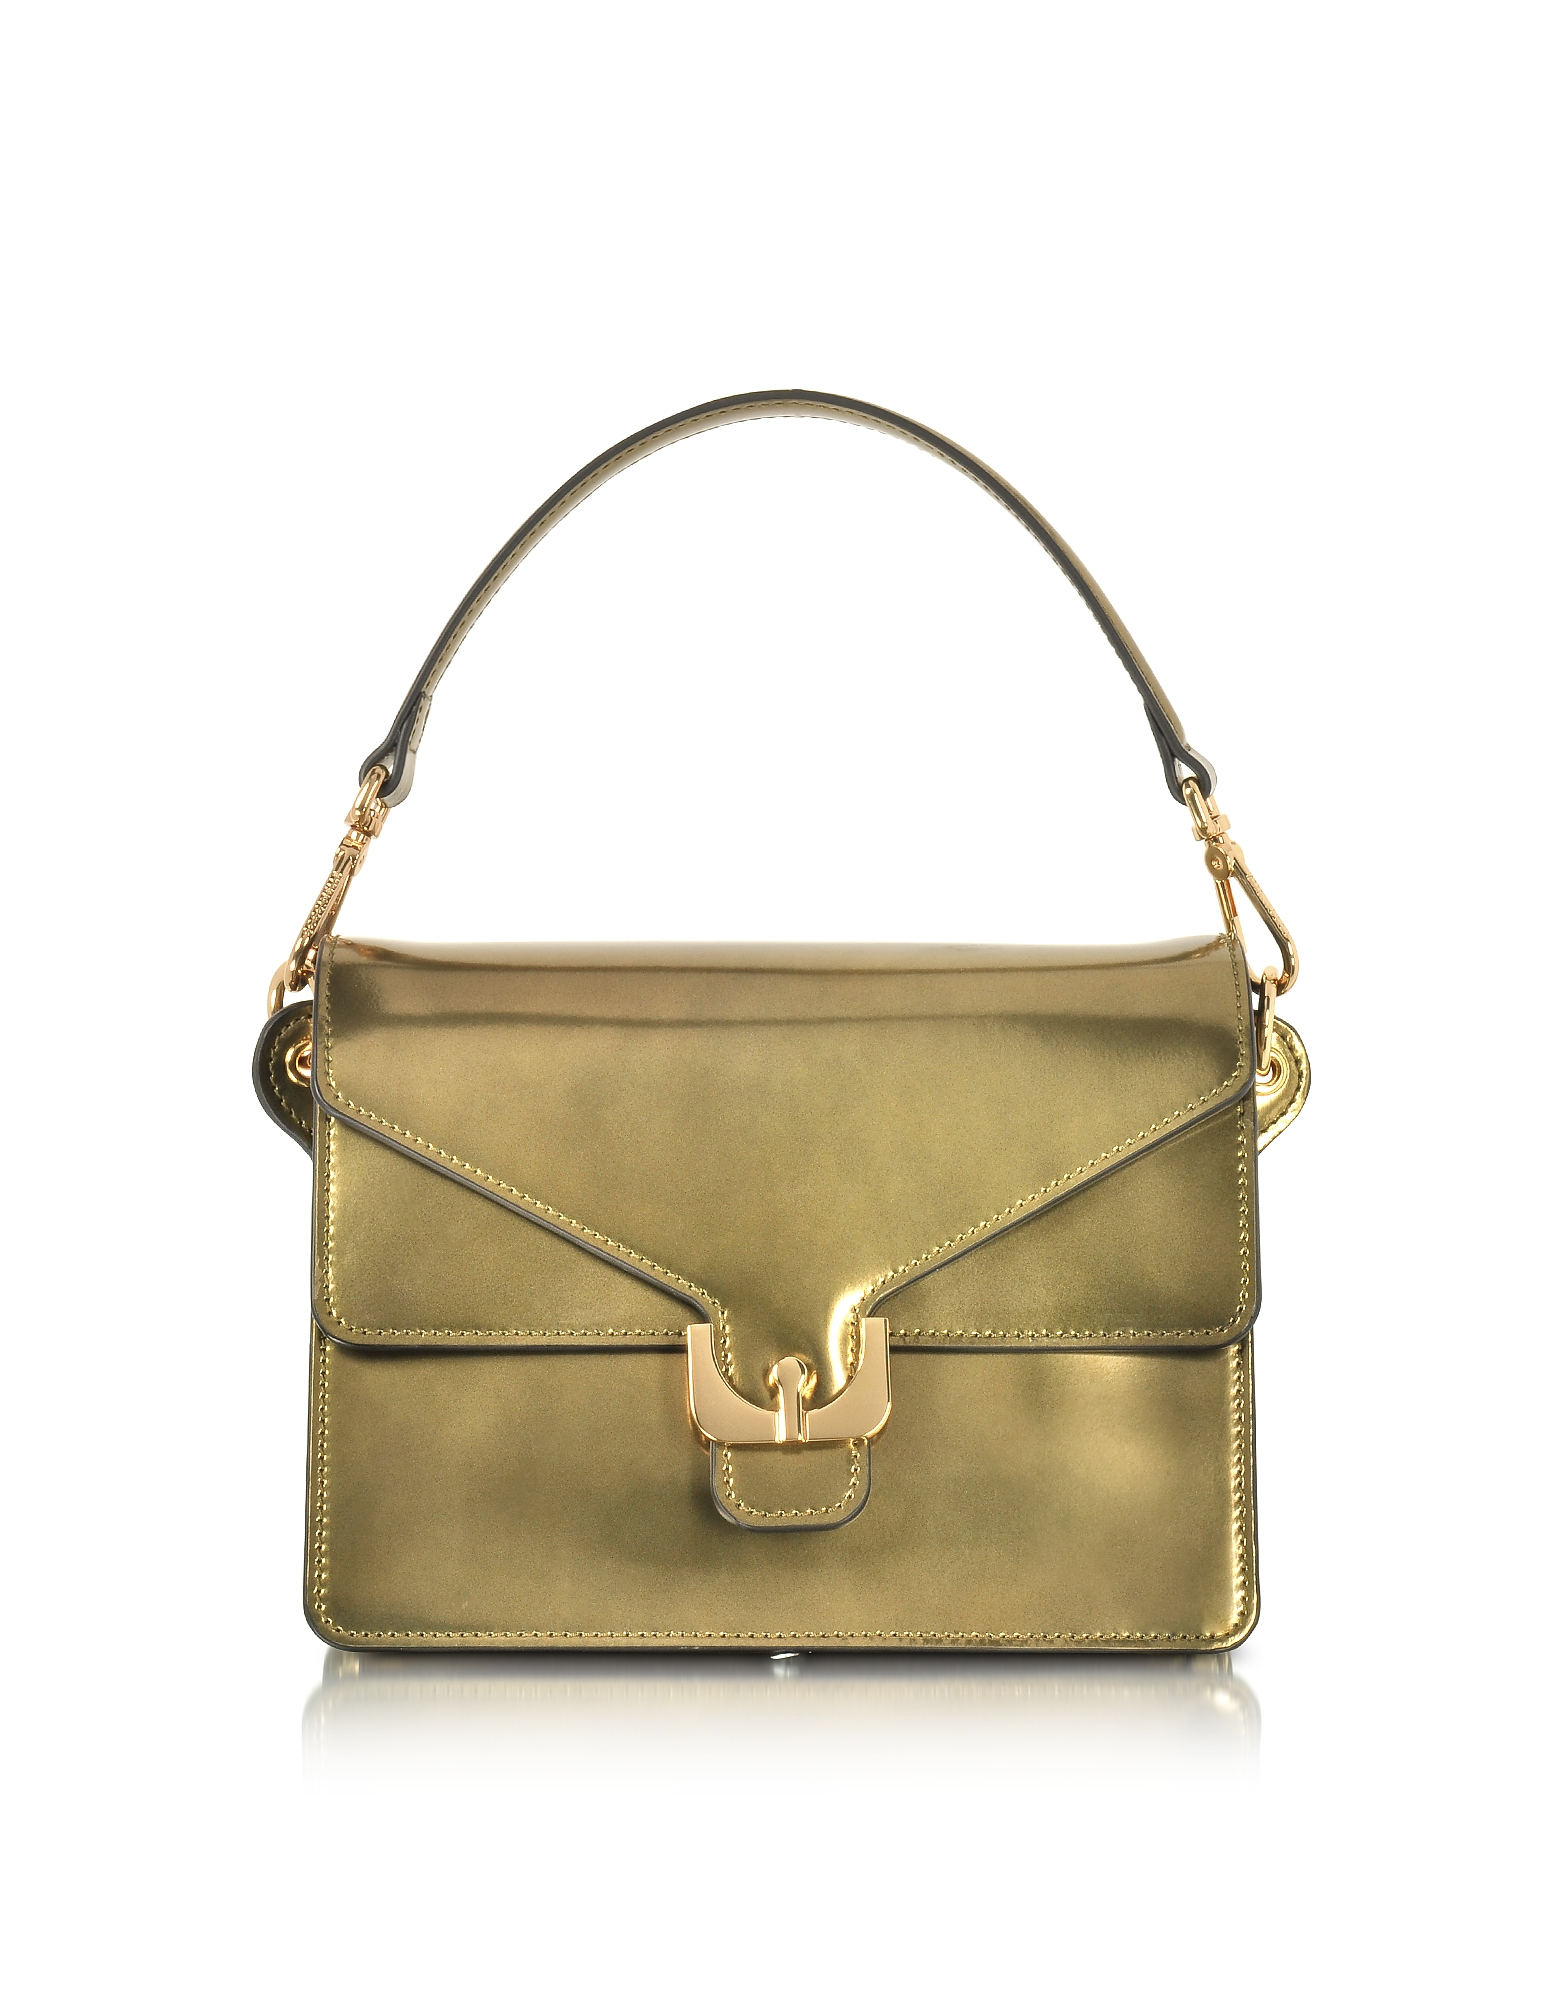 Coccinelle Handbags, Ambrine Lux Gold Laminated Leather Satchel Bag